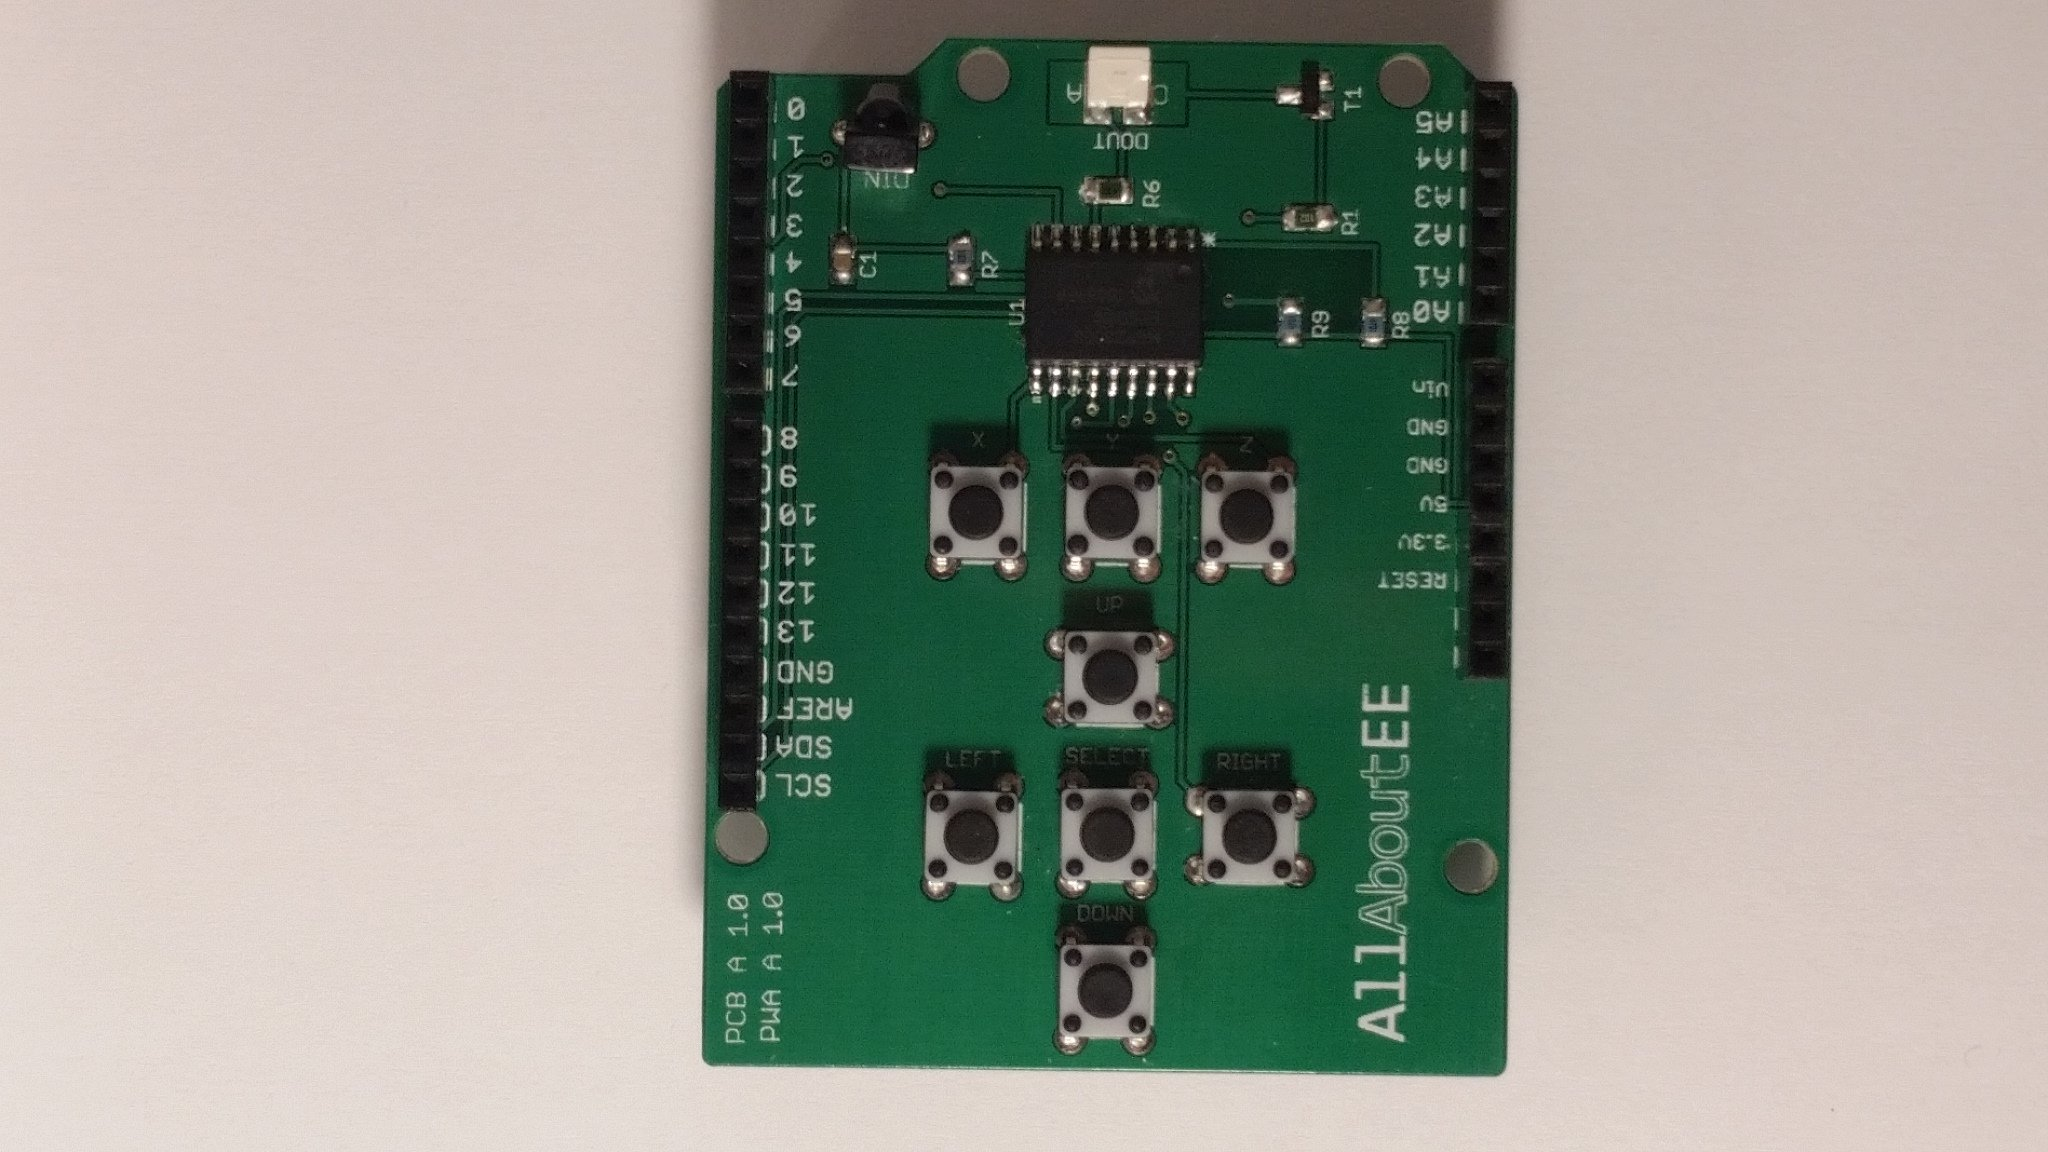 Infrared remote control shield for arduino from allaboutee